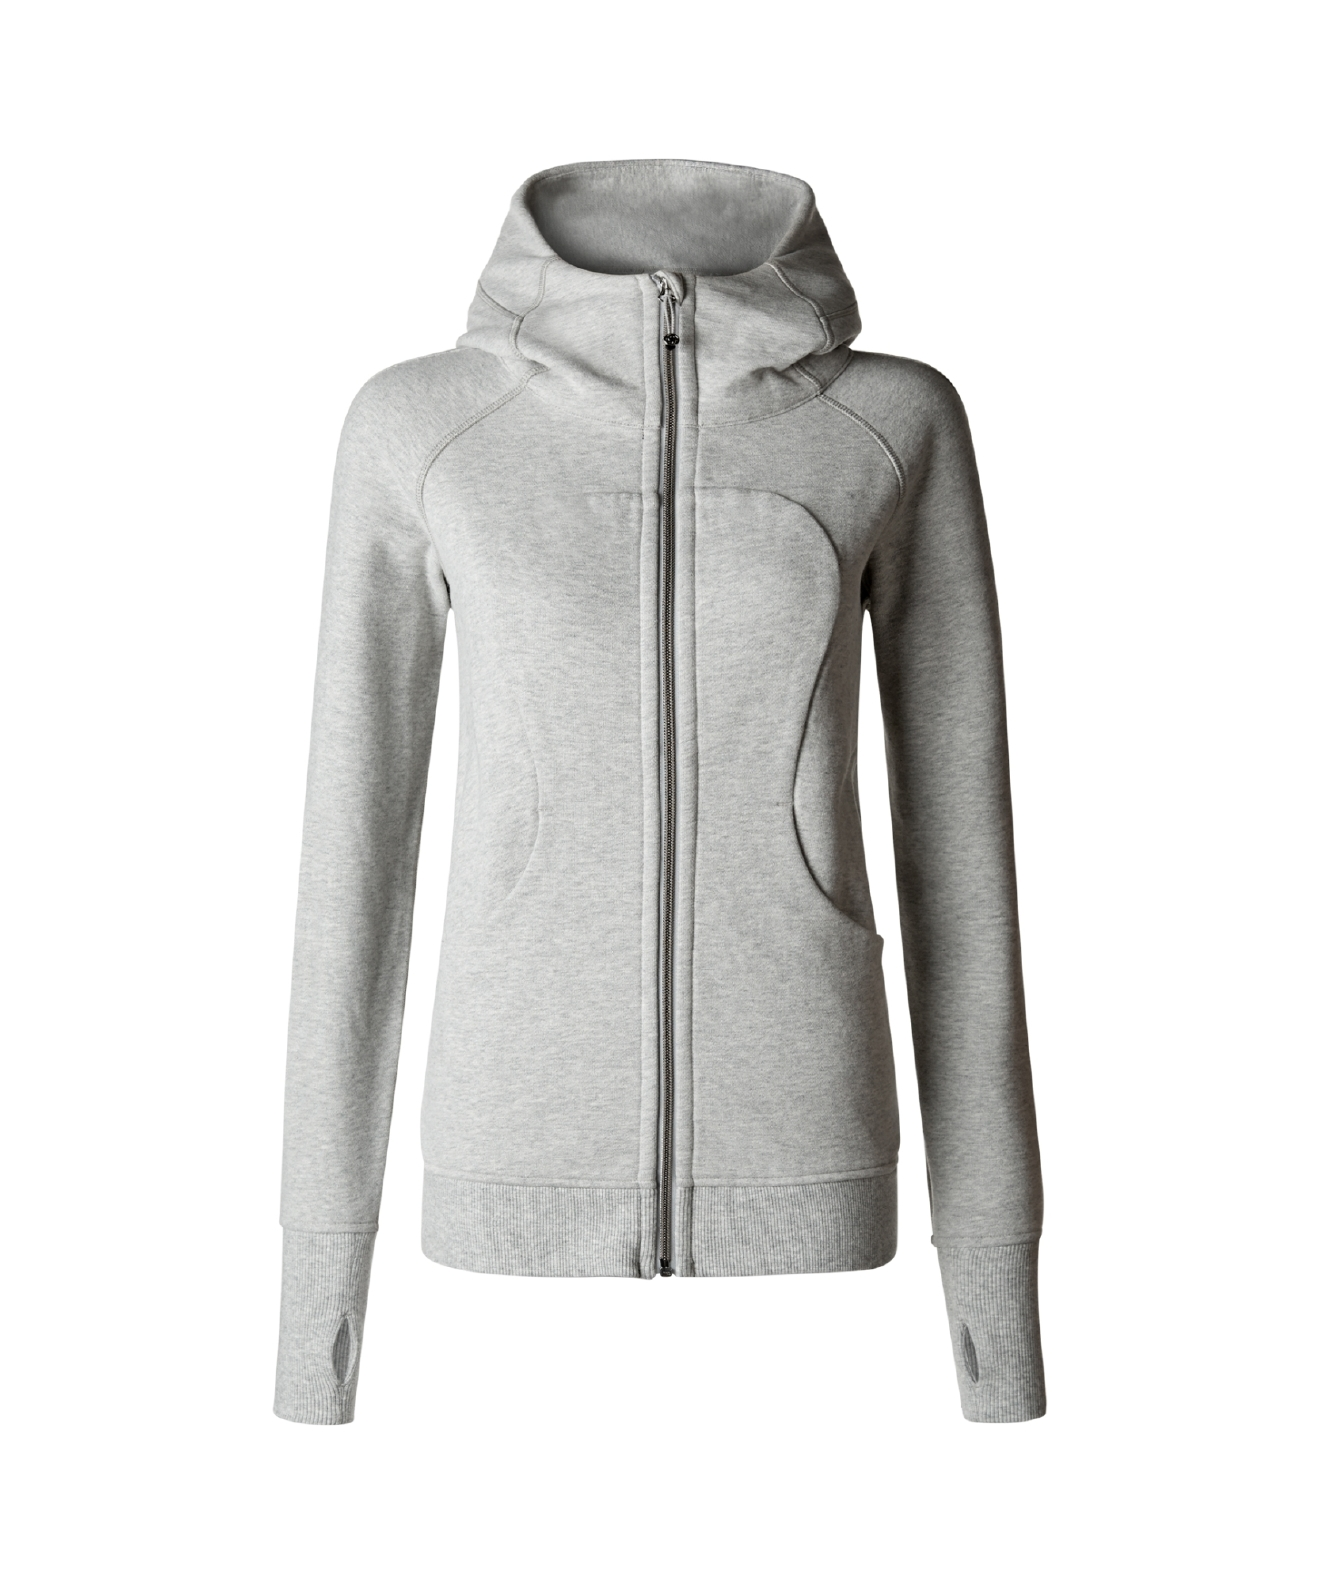 Lululemon Scuba Hoodie. Available at Lululemon stores and lululemon.com. (Photo: Lululemon)